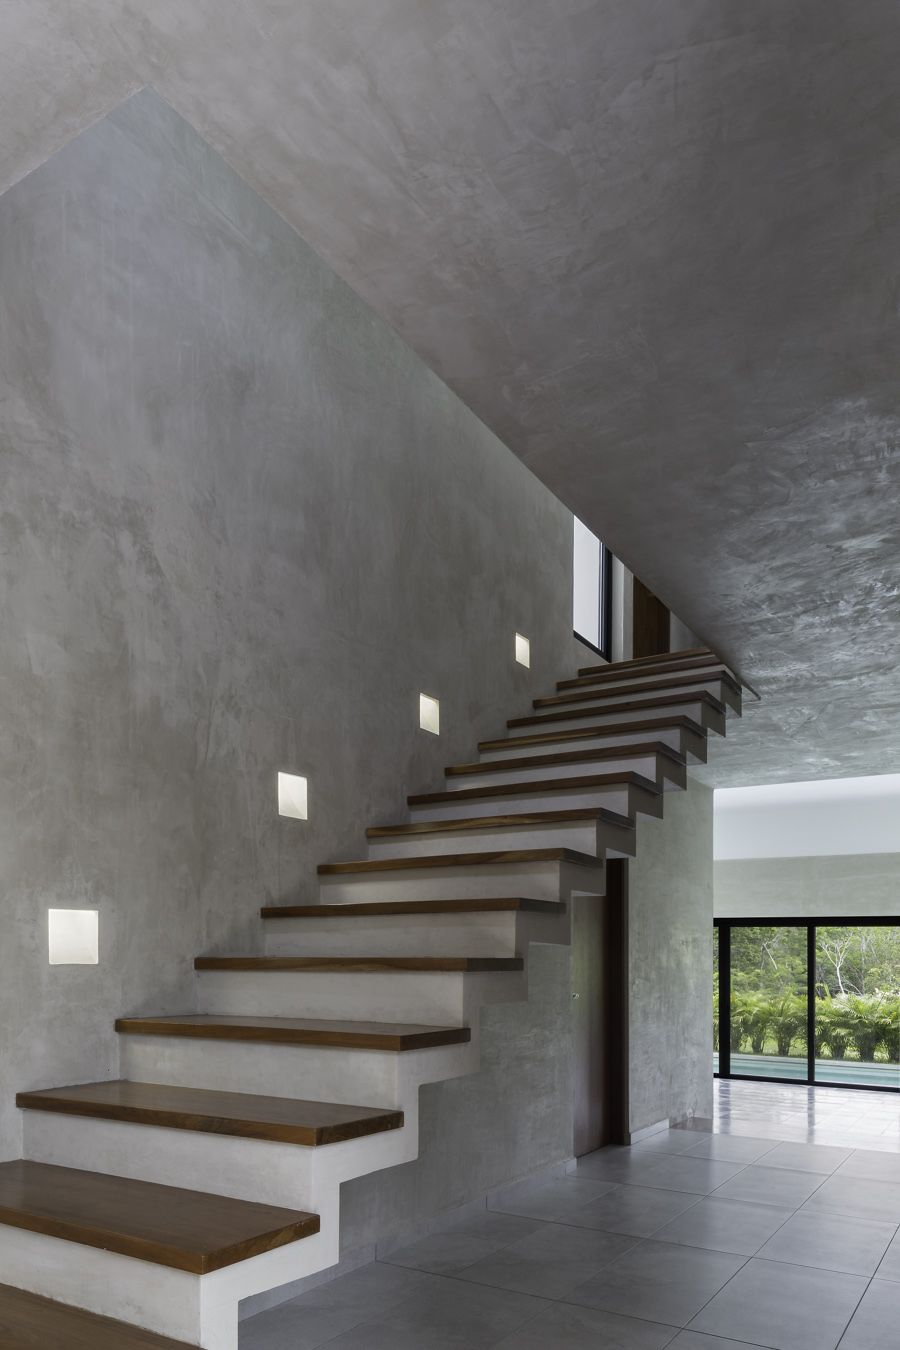 Tappeti per scale interne scale in ferro per esterno leroy merlin ringhiere per scale for Coprigradini leroy merlin